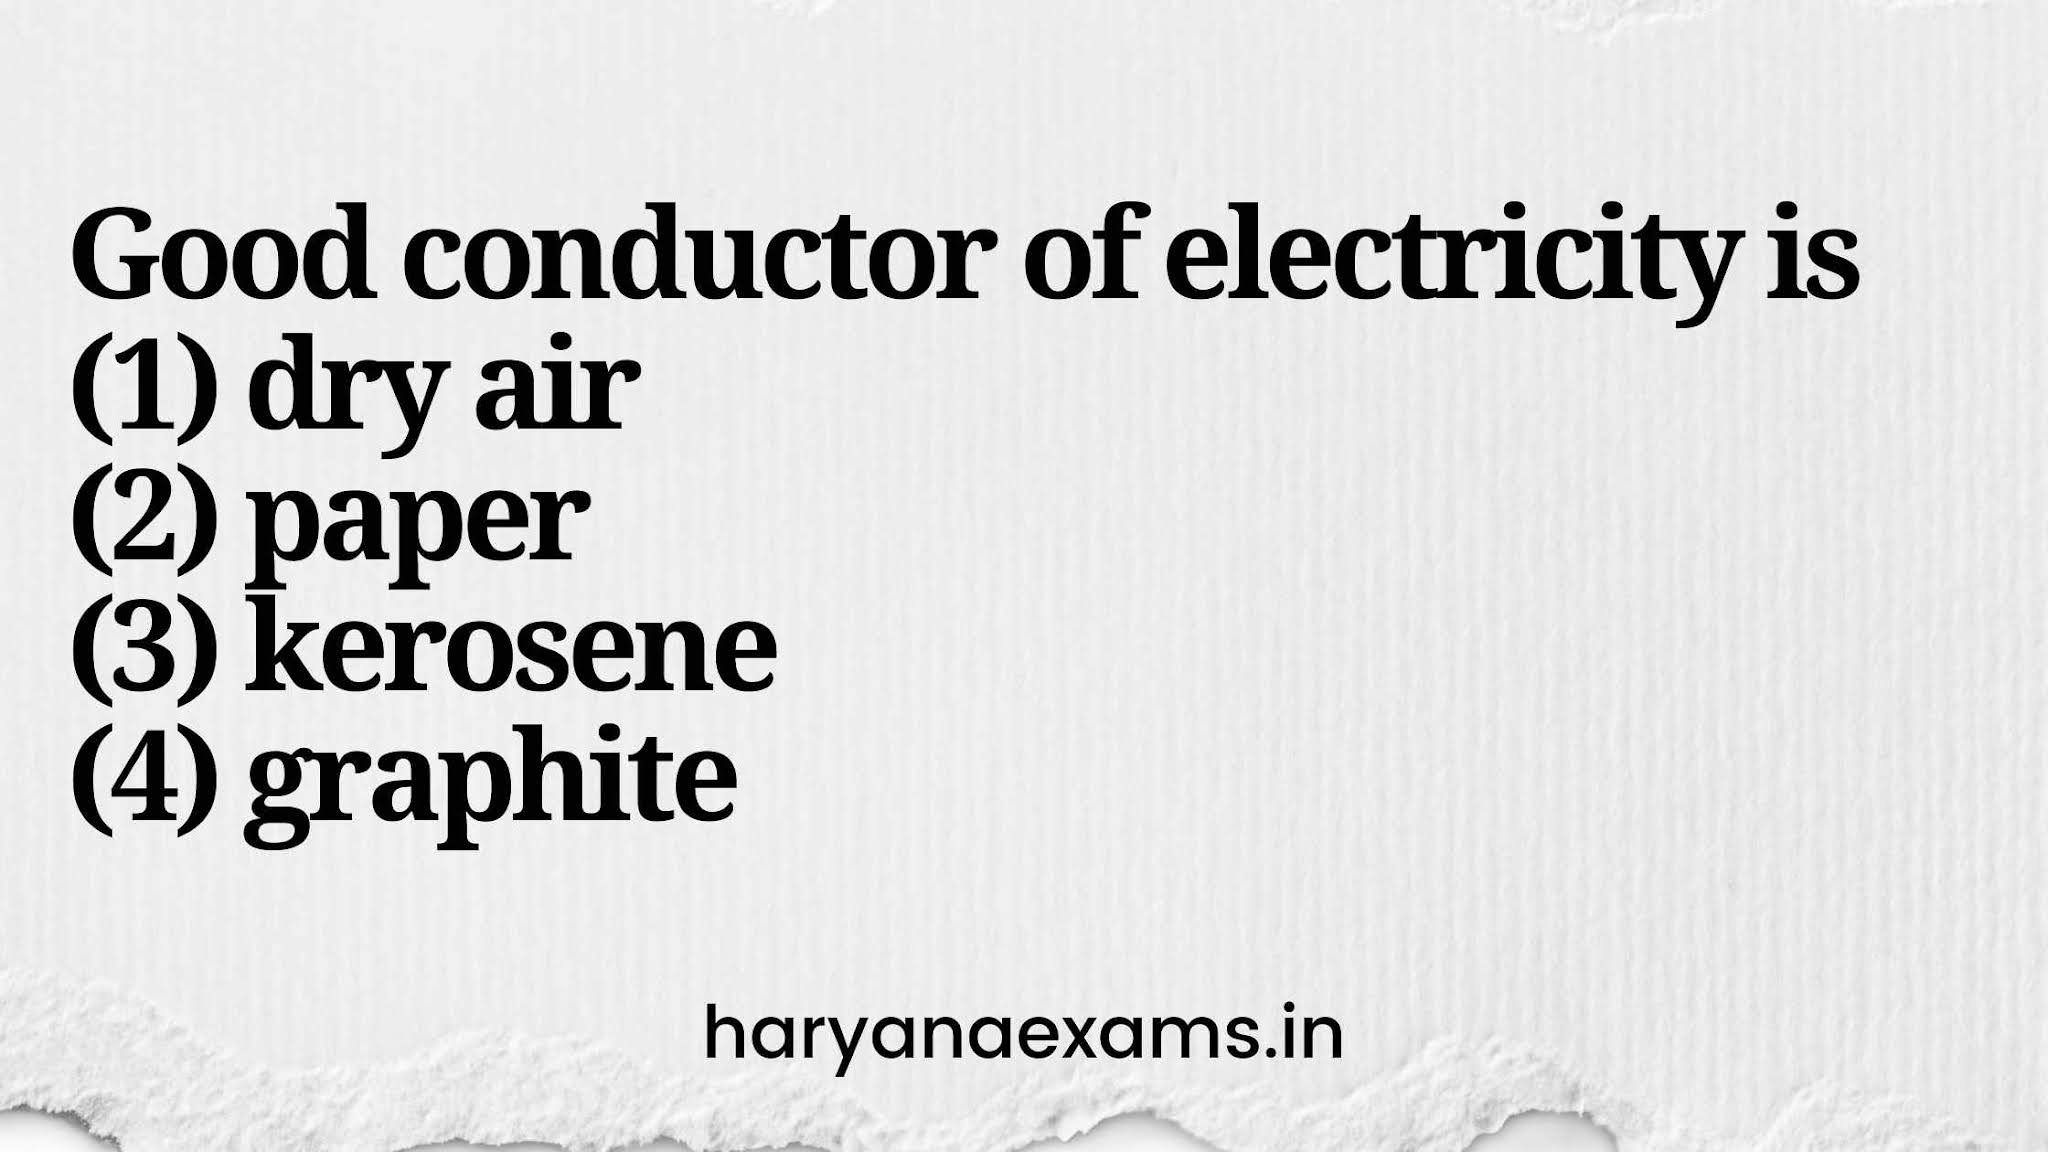 Good conductor of electricity is   (1) dry air   (2) paper   (3) kerosene   (4) graphite